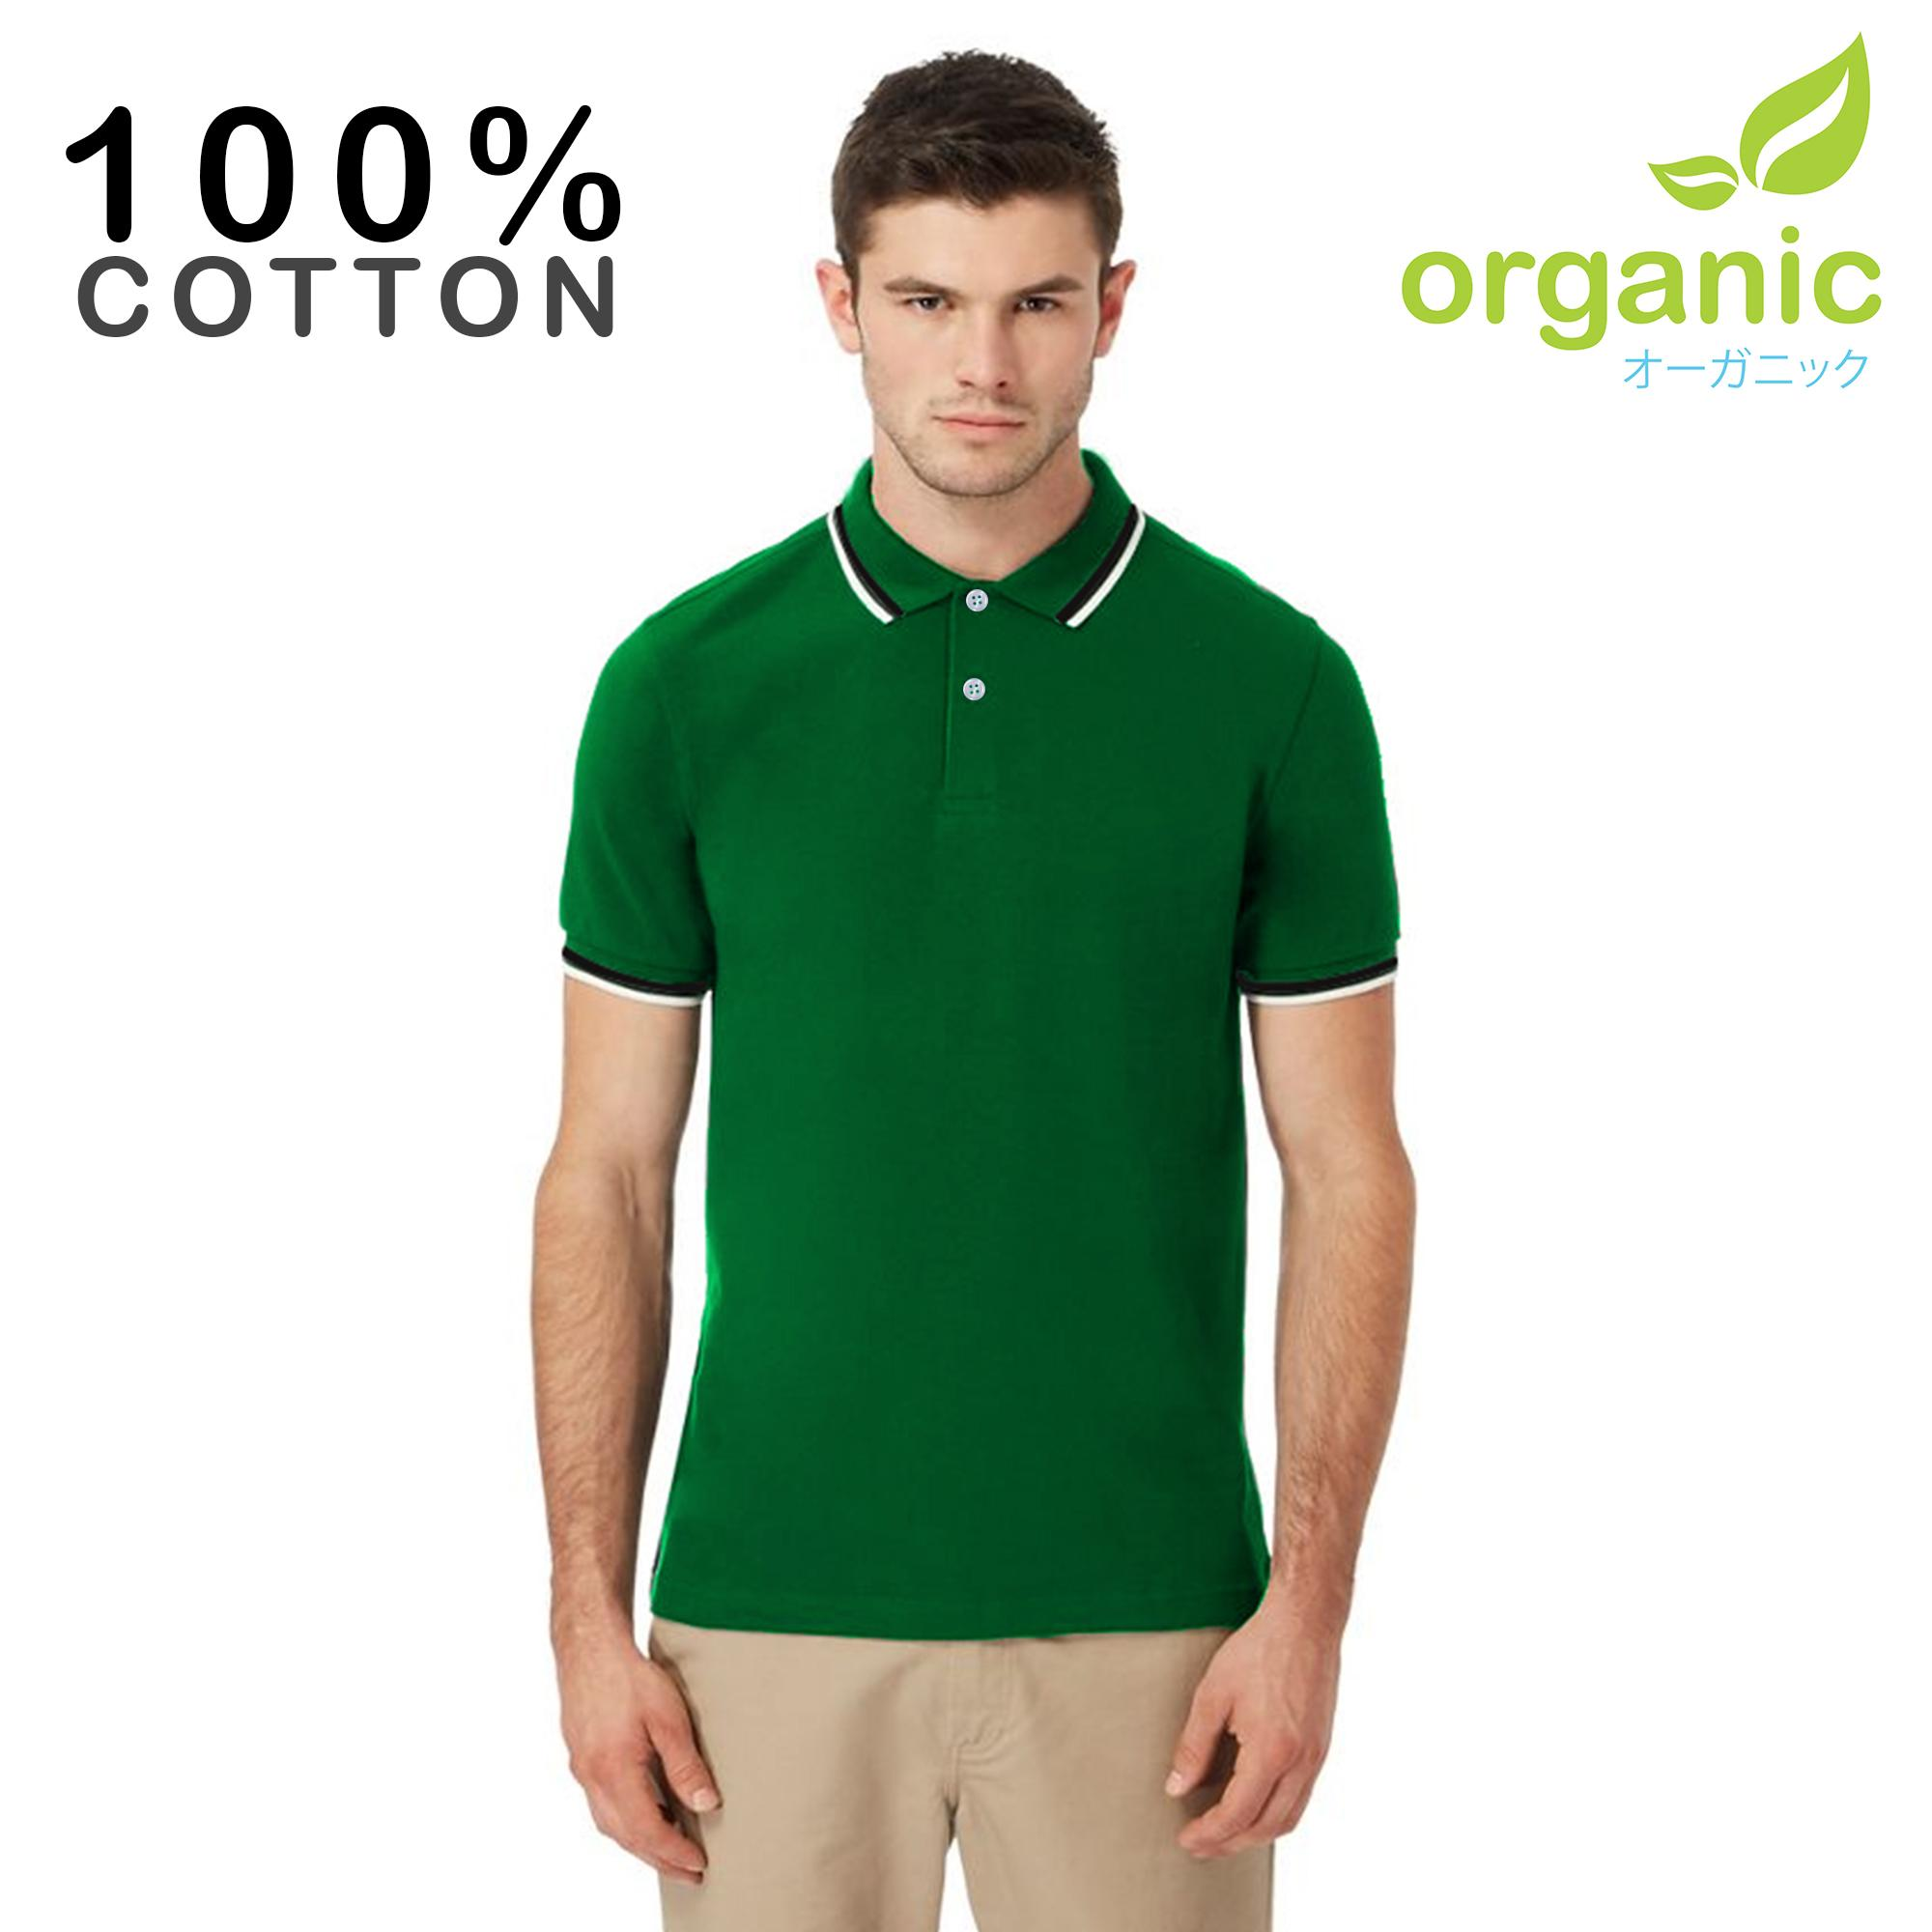 Polo For Men Sale Mens Online Brands Prices Reviews In Tendencies Tshirt Monday To Long Navy Xxl Organic Tipped Pique Shirt Tees T Shirts Tshirts Tee Tops Top